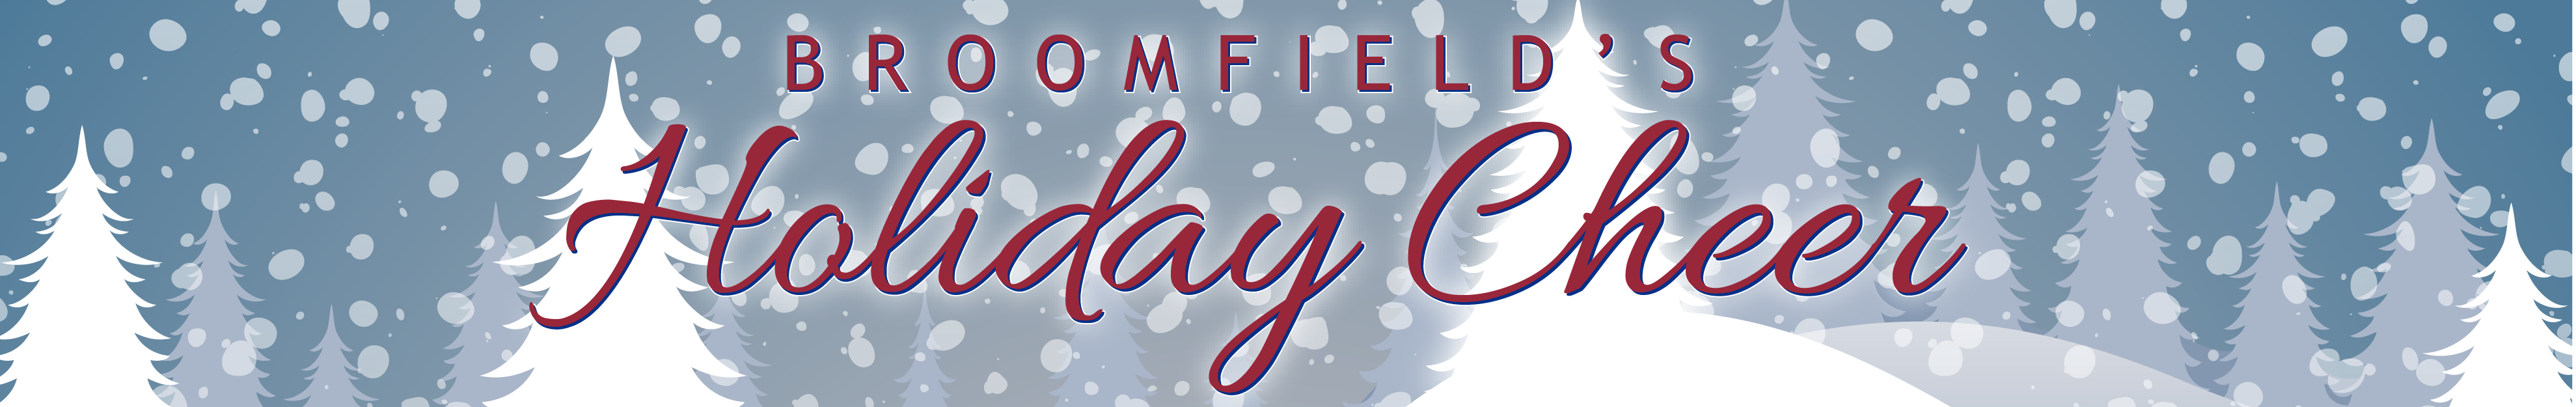 2016 Holiday Cheer website header-01_simple layout.png